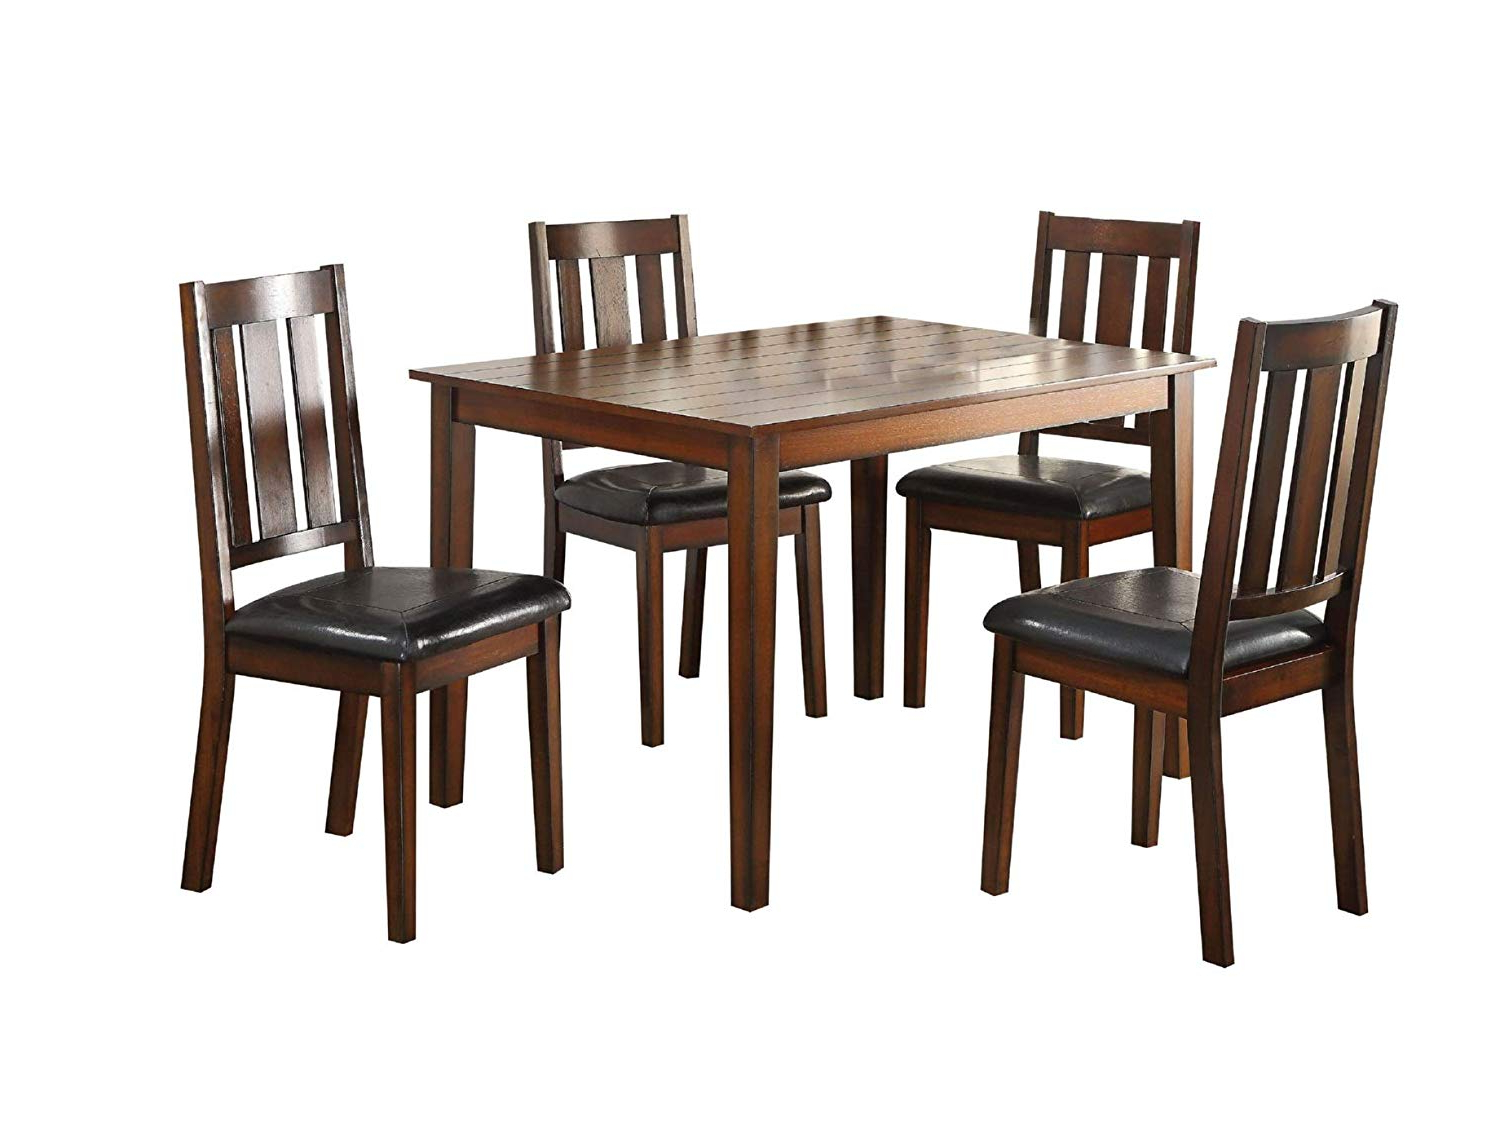 Best And Newest Transitional 4 Seating Square Casual Dining Tables Inside Amazon – Major Q 5Pc Pack Transitional Style Casual (View 5 of 25)